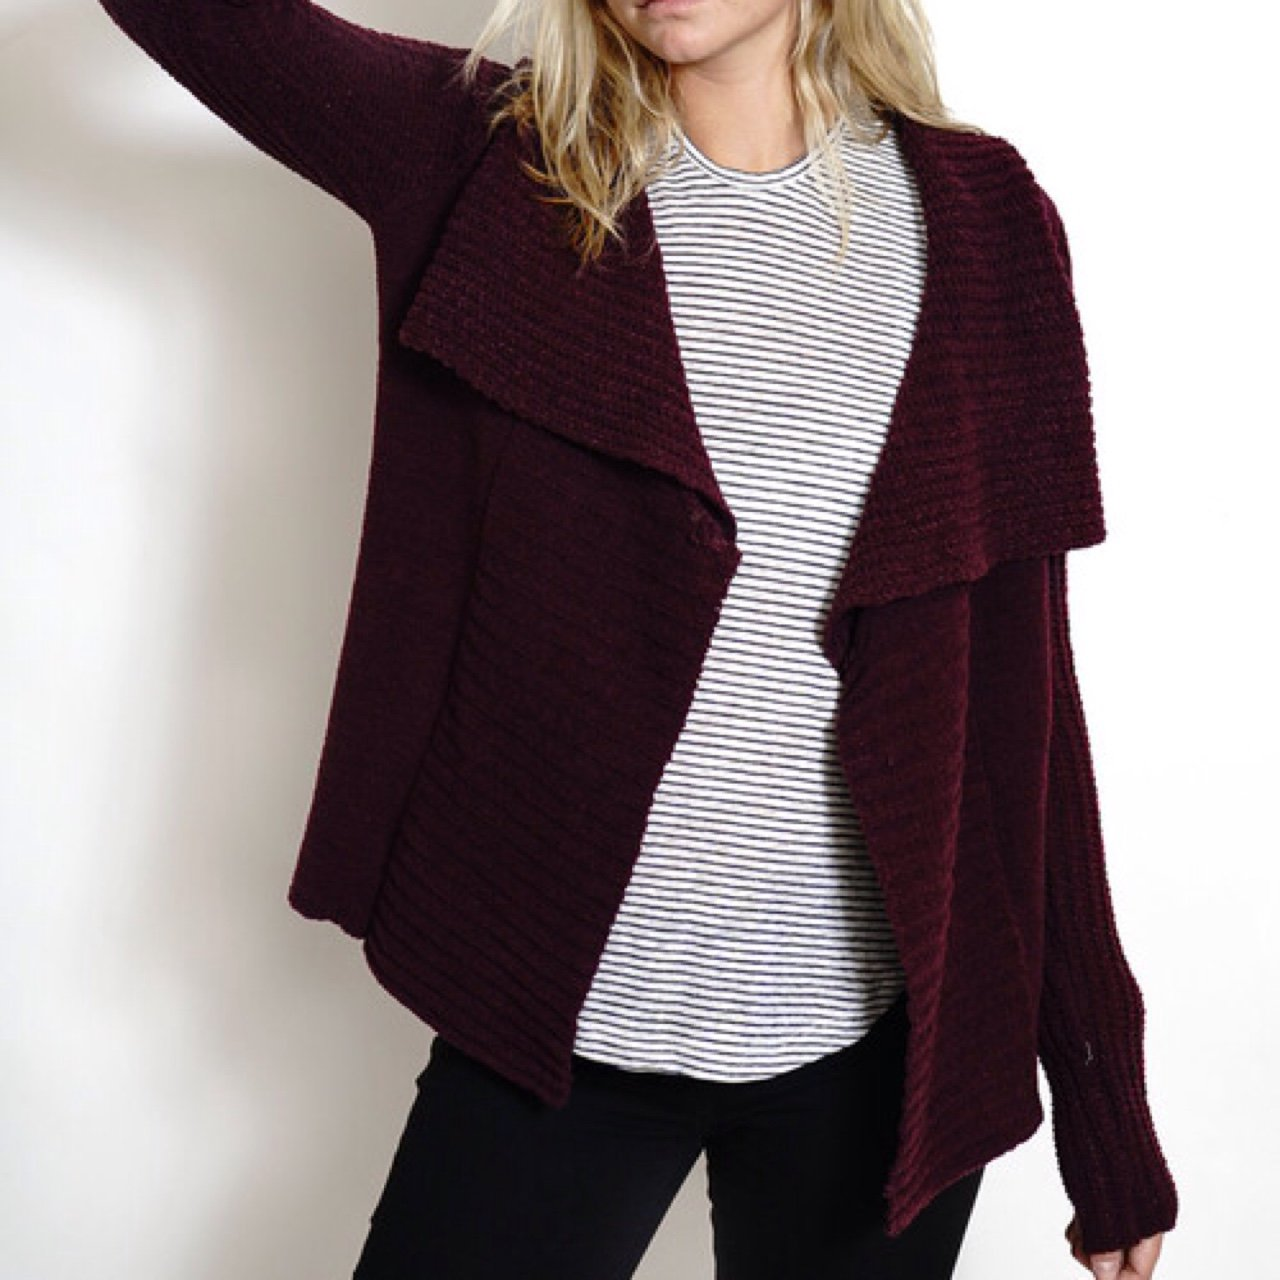 1993123b72 H M Burgundy Knit Open Front Cardigan - Color is maroon